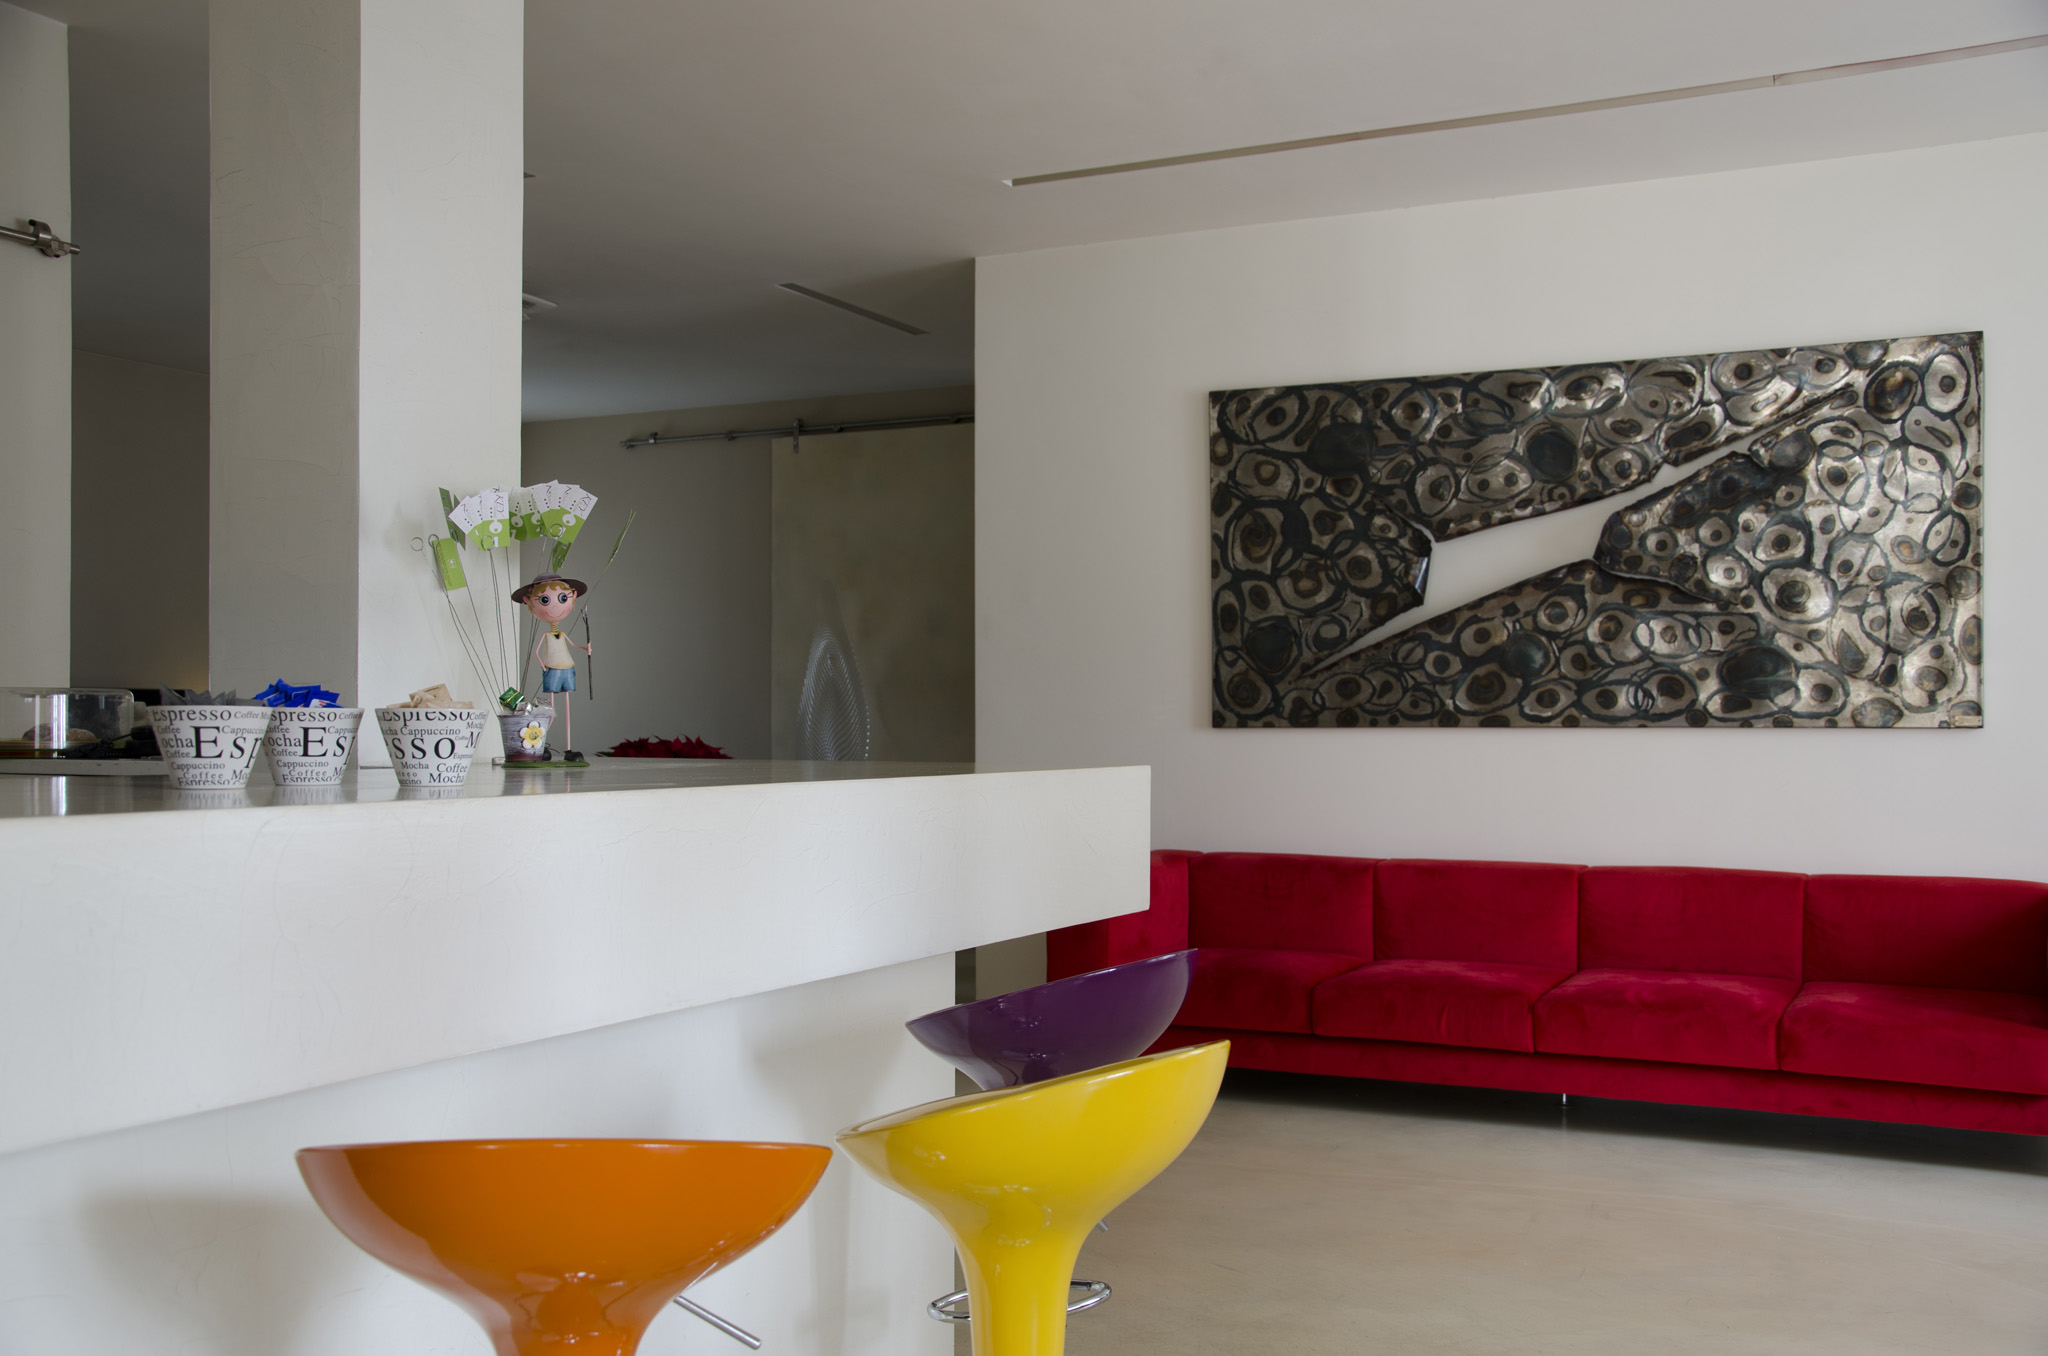 Key Hotel  | Vicenza | Photos 14